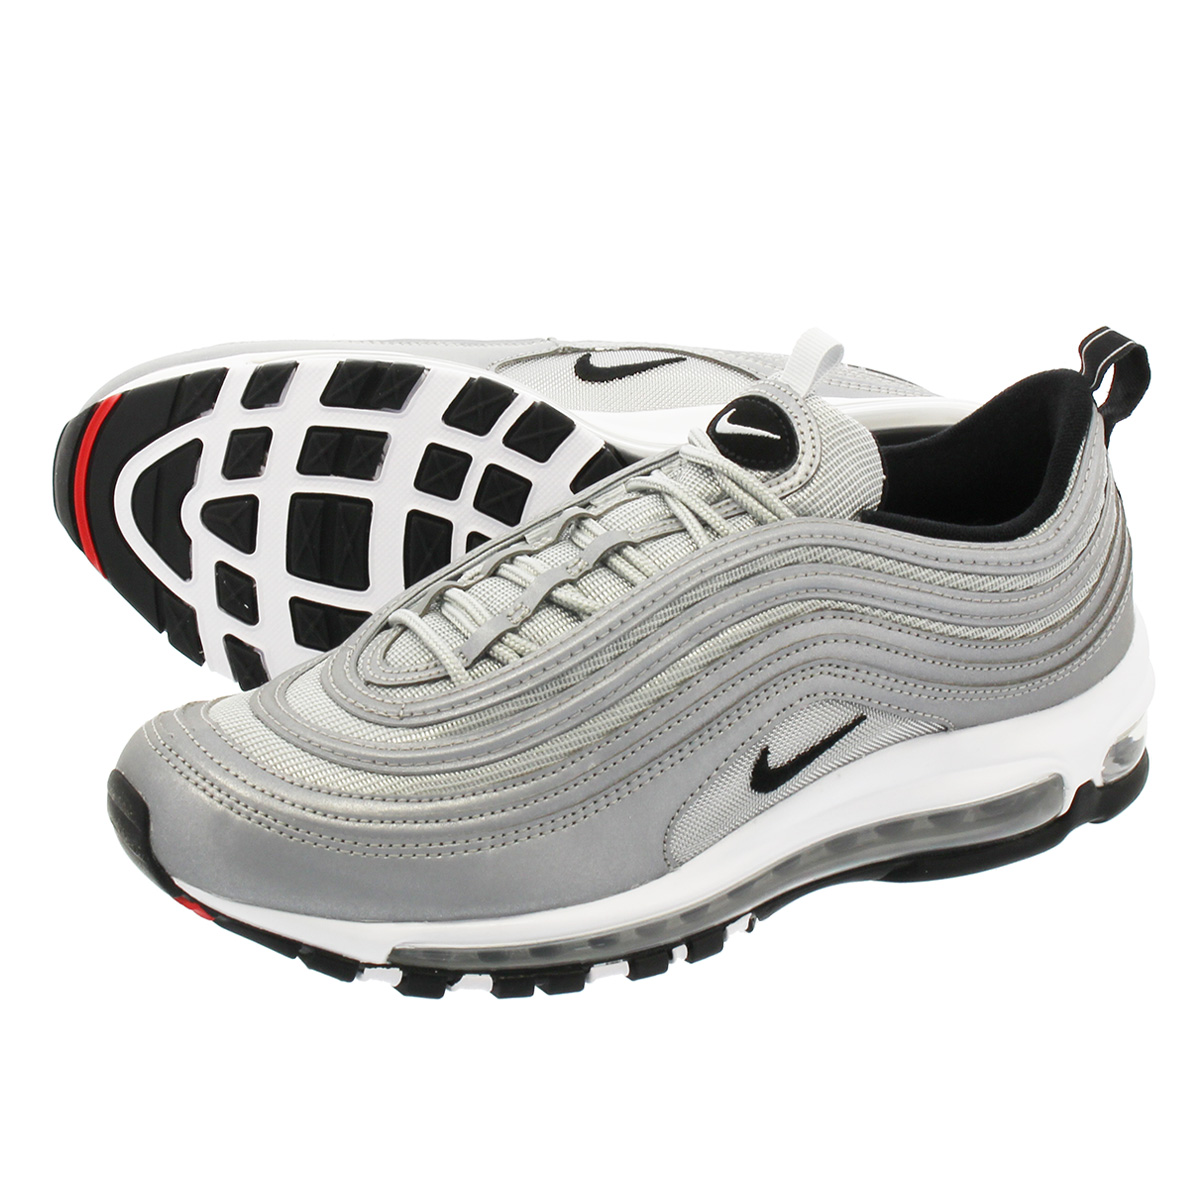 0c492c144a LOWTEX PLUS: NIKE AIR MAX 97 PREMIUM Kie Ney AMAX 97 premium REFLECT SILVER/ BLACK/PURE PLATINUM 312,834-007 | Rakuten Global Market